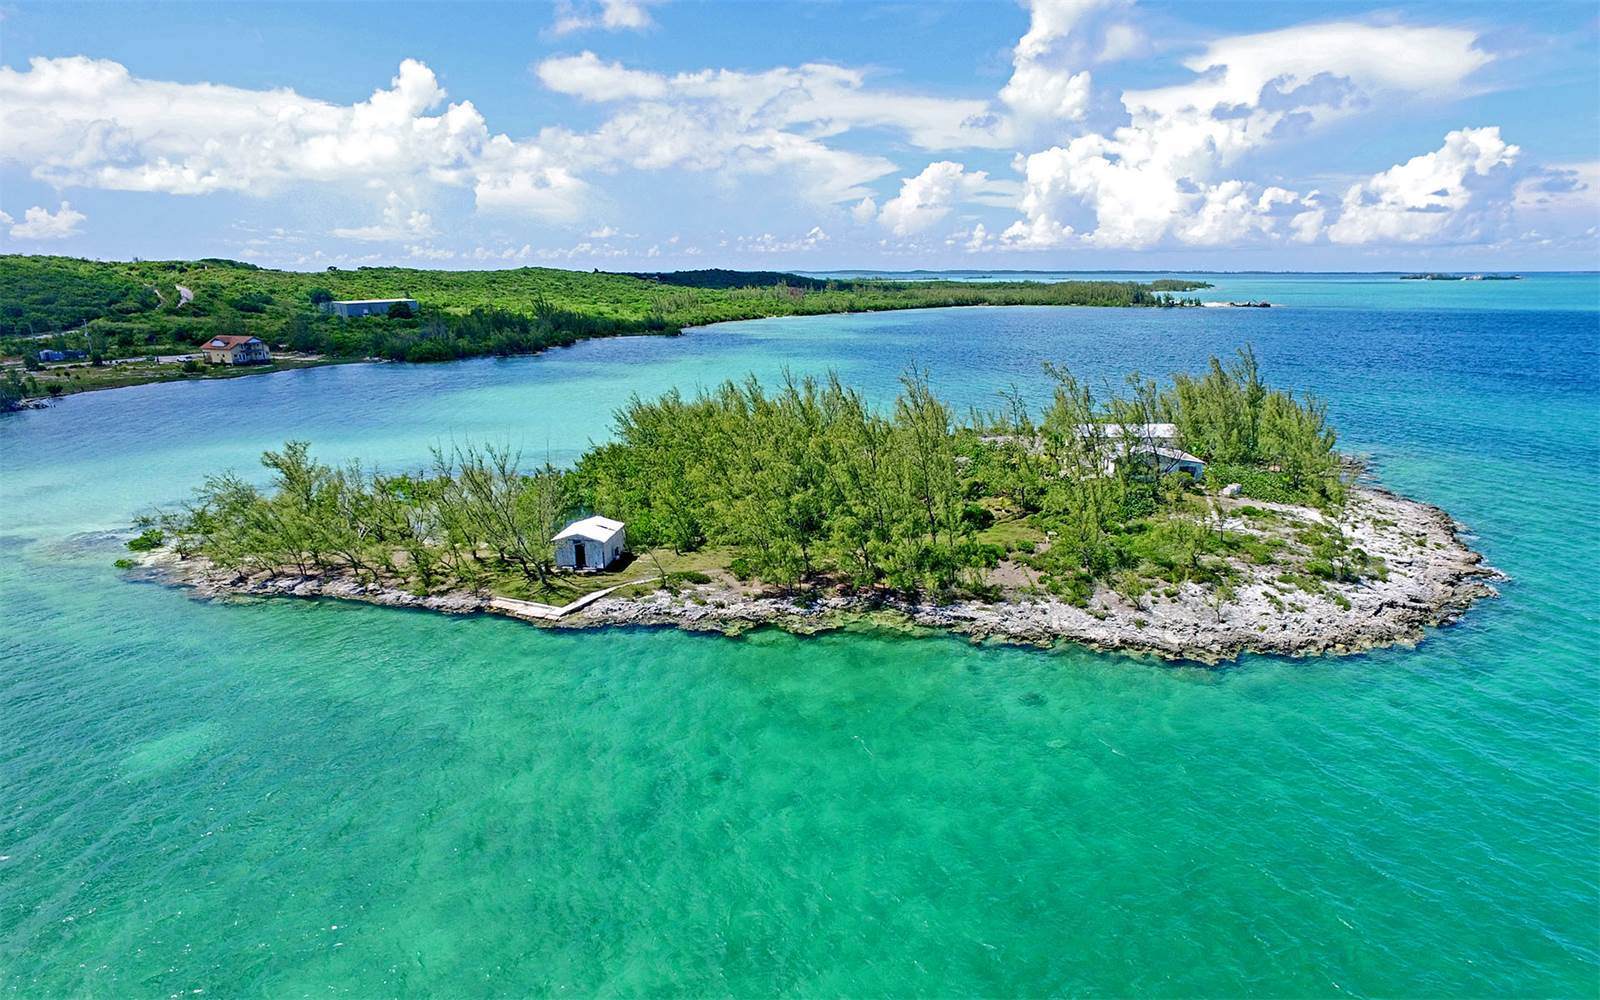 Reklusia island eleuthera bahamas caribbean private for Bahamas private island for sale